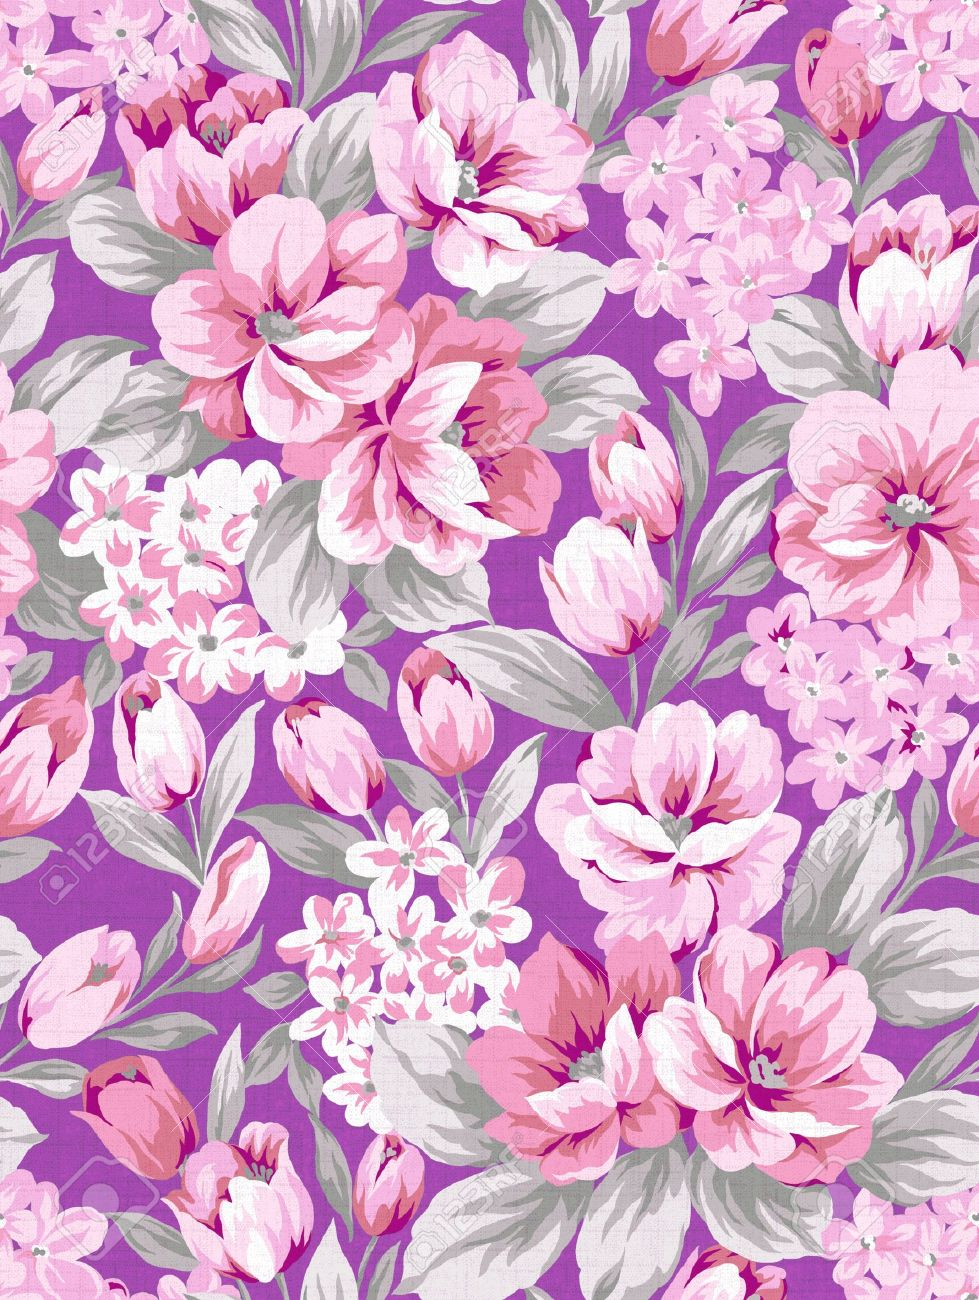 Purple Flower Background Design Kampa Luckincsolutions Org